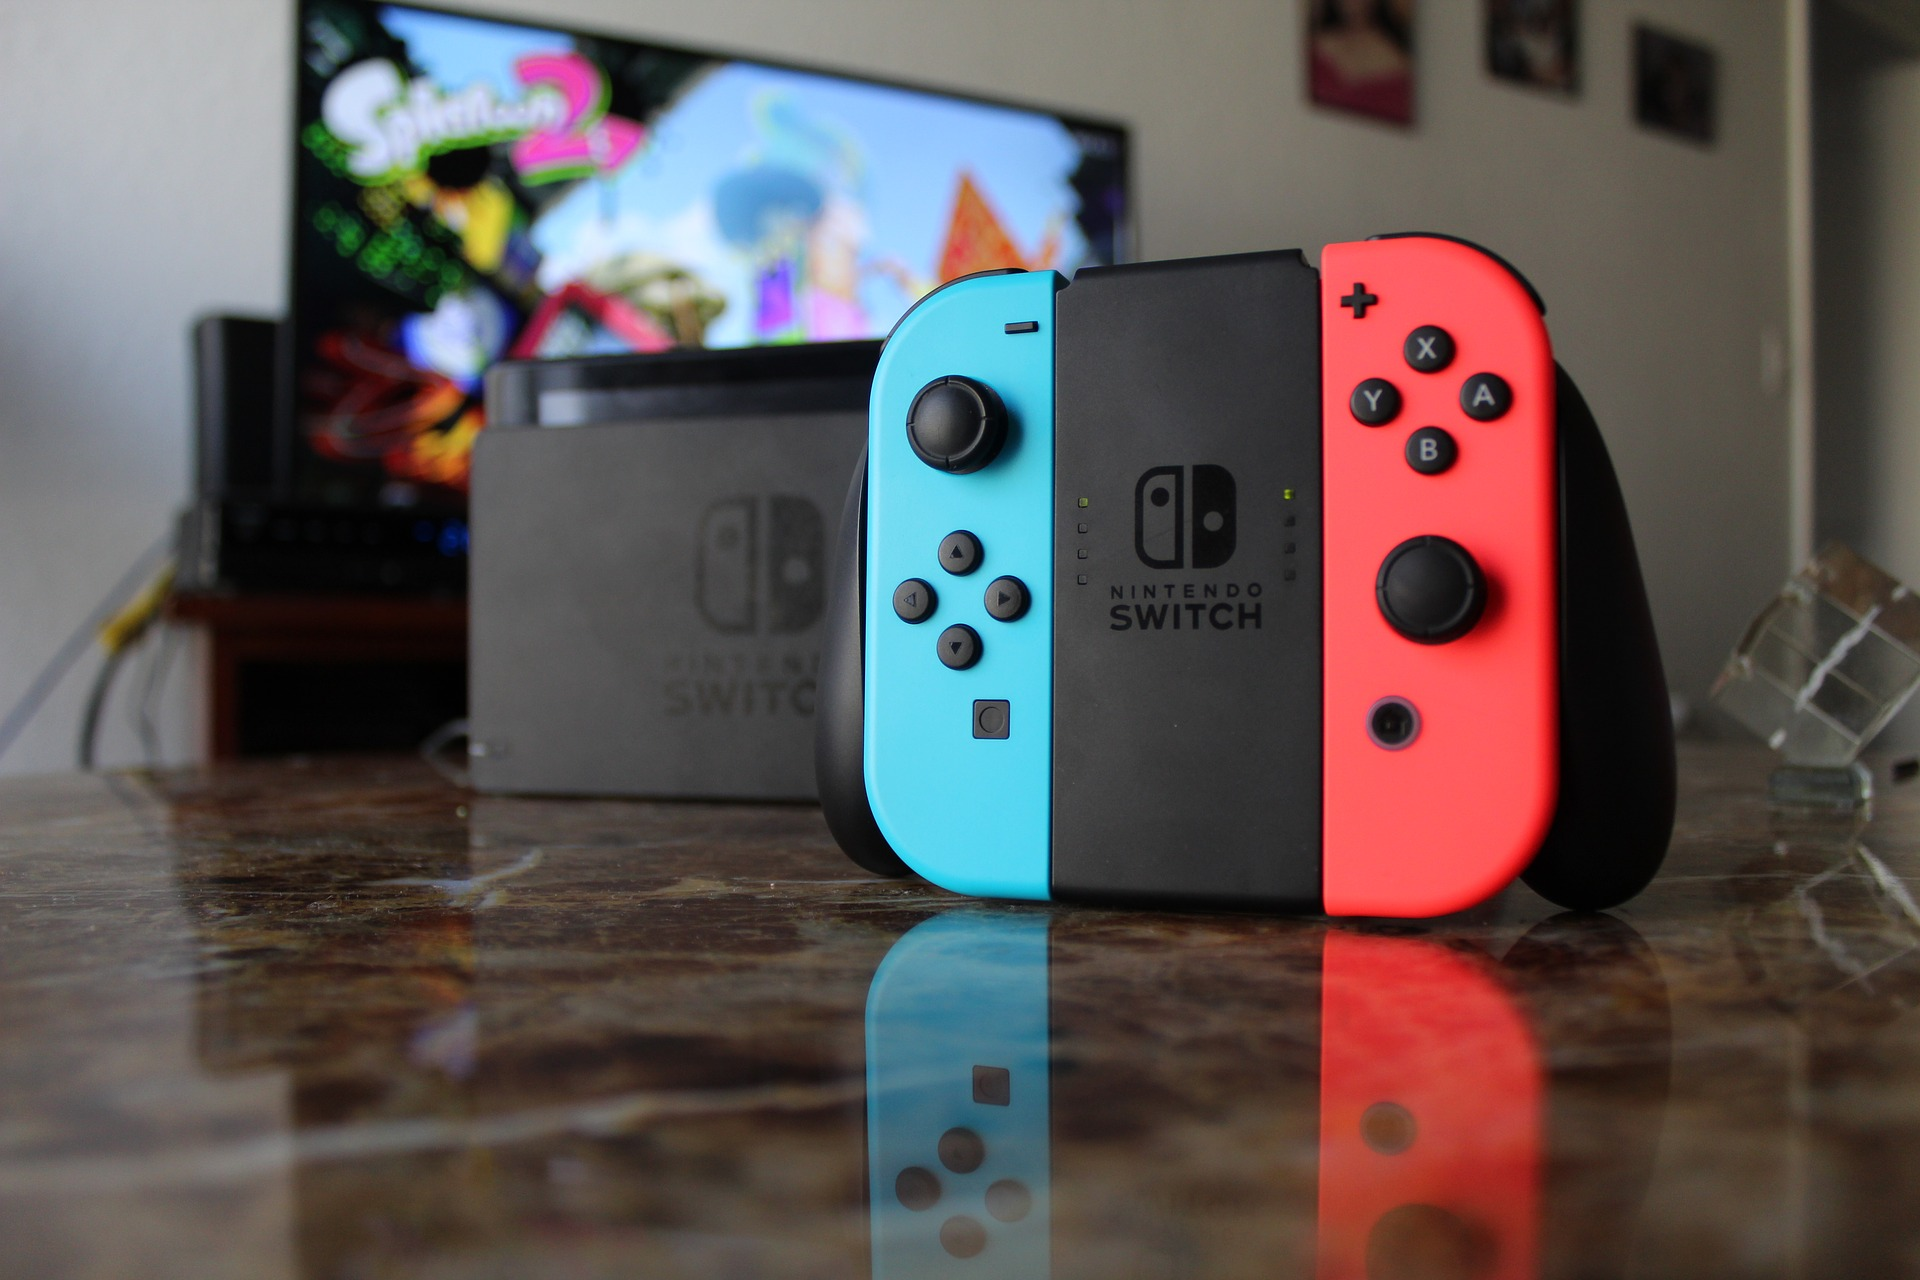 Nintendo refuses to make any statements on the latest Switch report